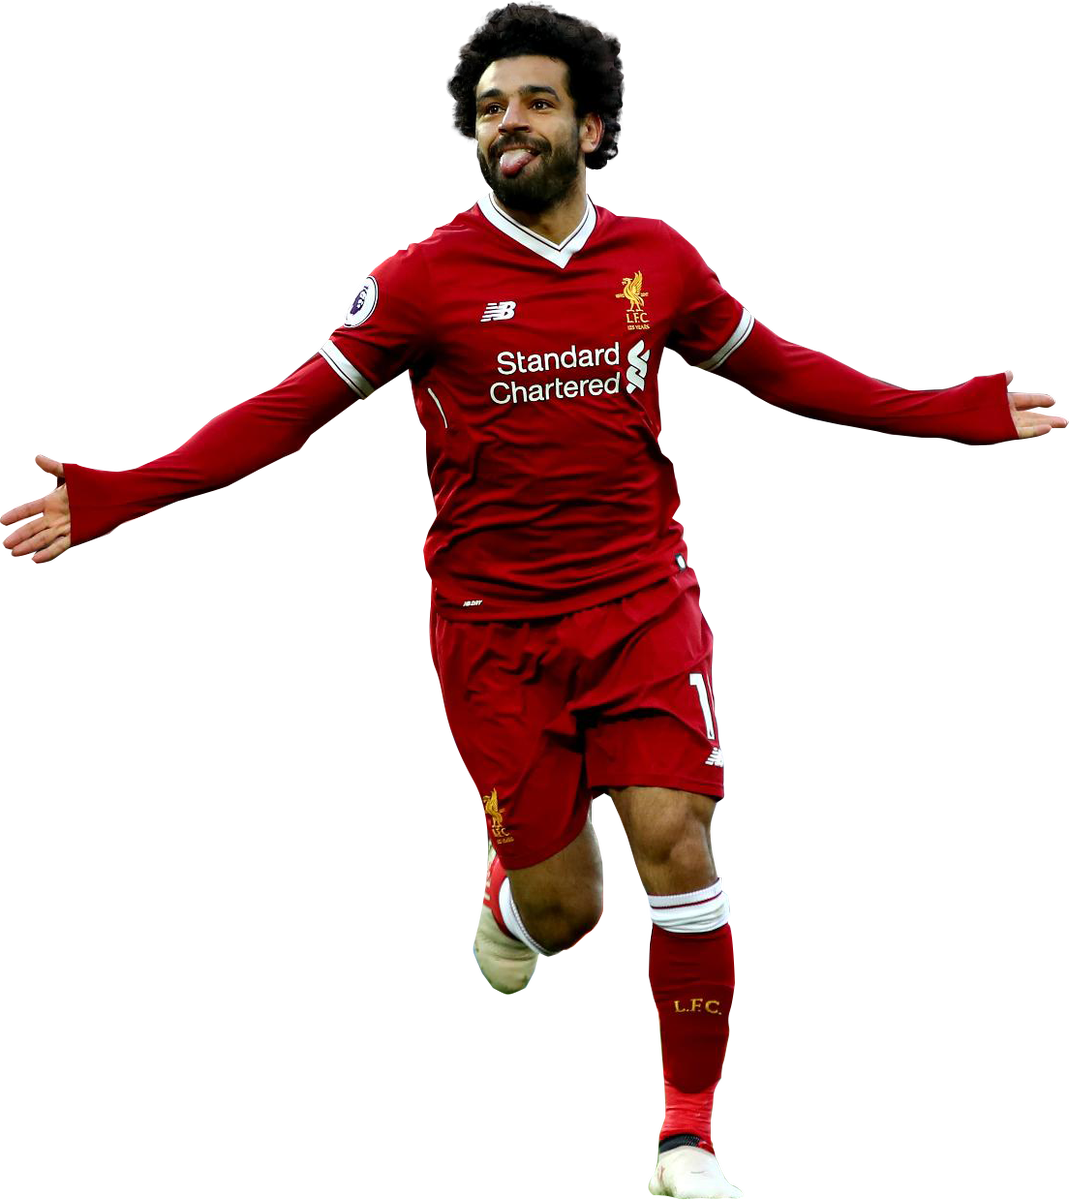 download footyrenders on twitter mohamed salah liverpool png full size png image pngkit twitter mohamed salah liverpool png